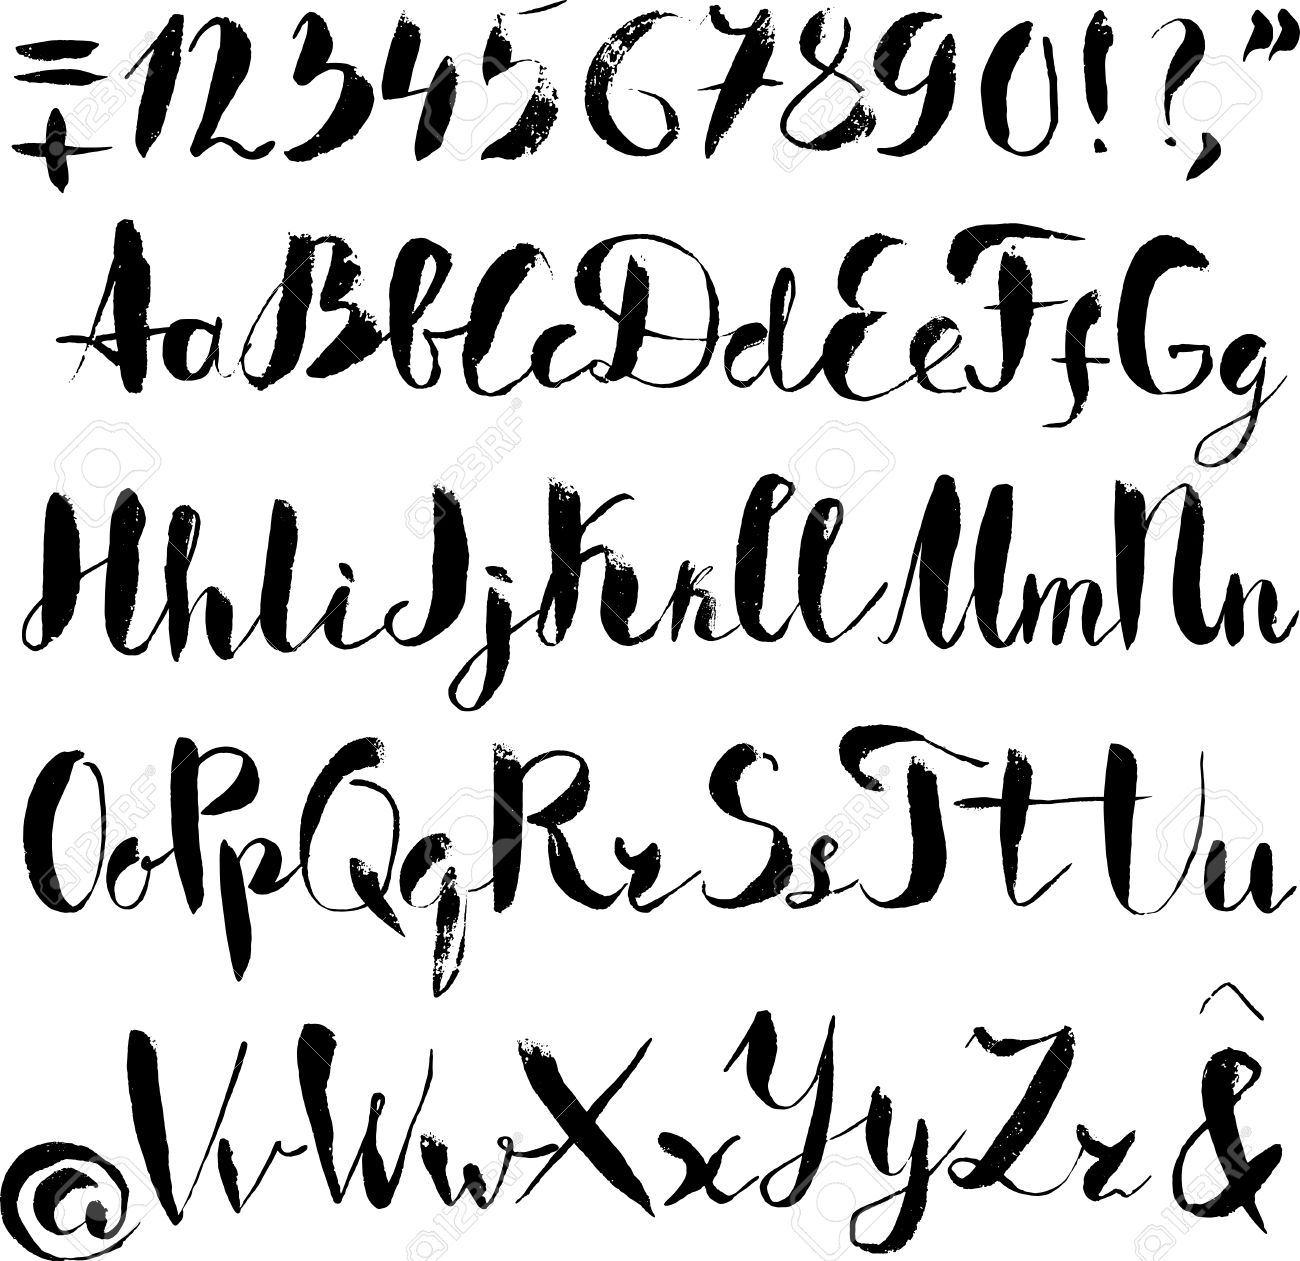 Handwritten Alphabet Written With Brush Pen ABC Poster Calligraphic Letters Composition